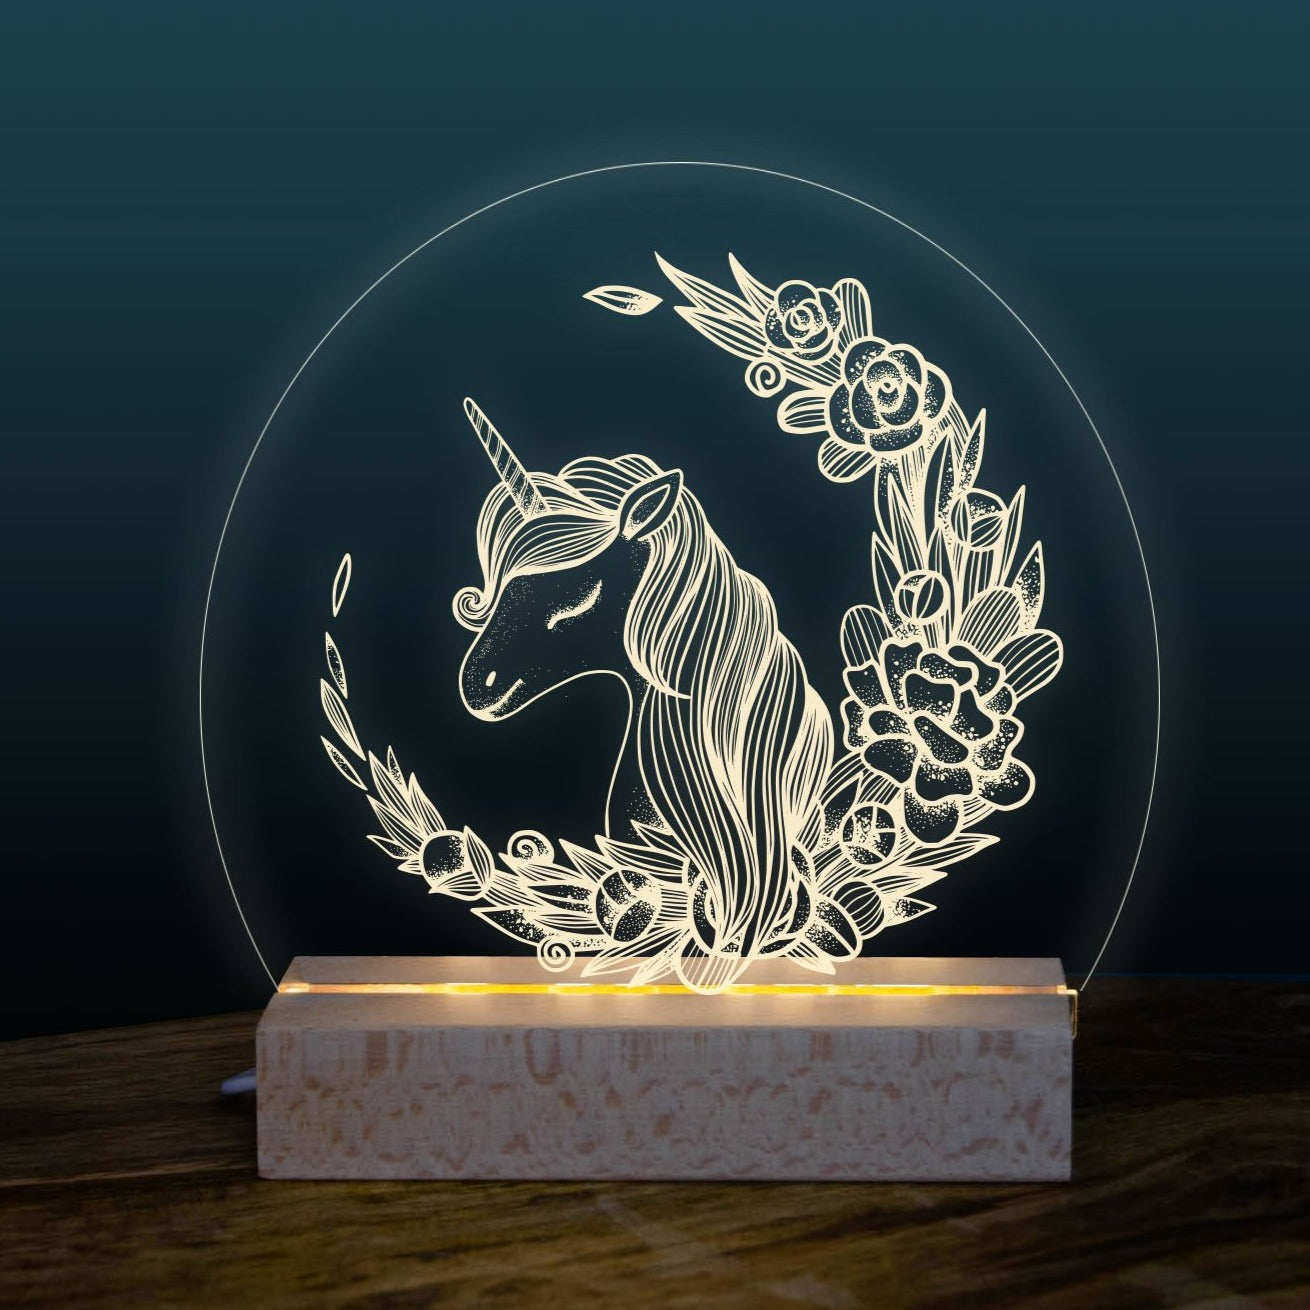 Unicorn night light design